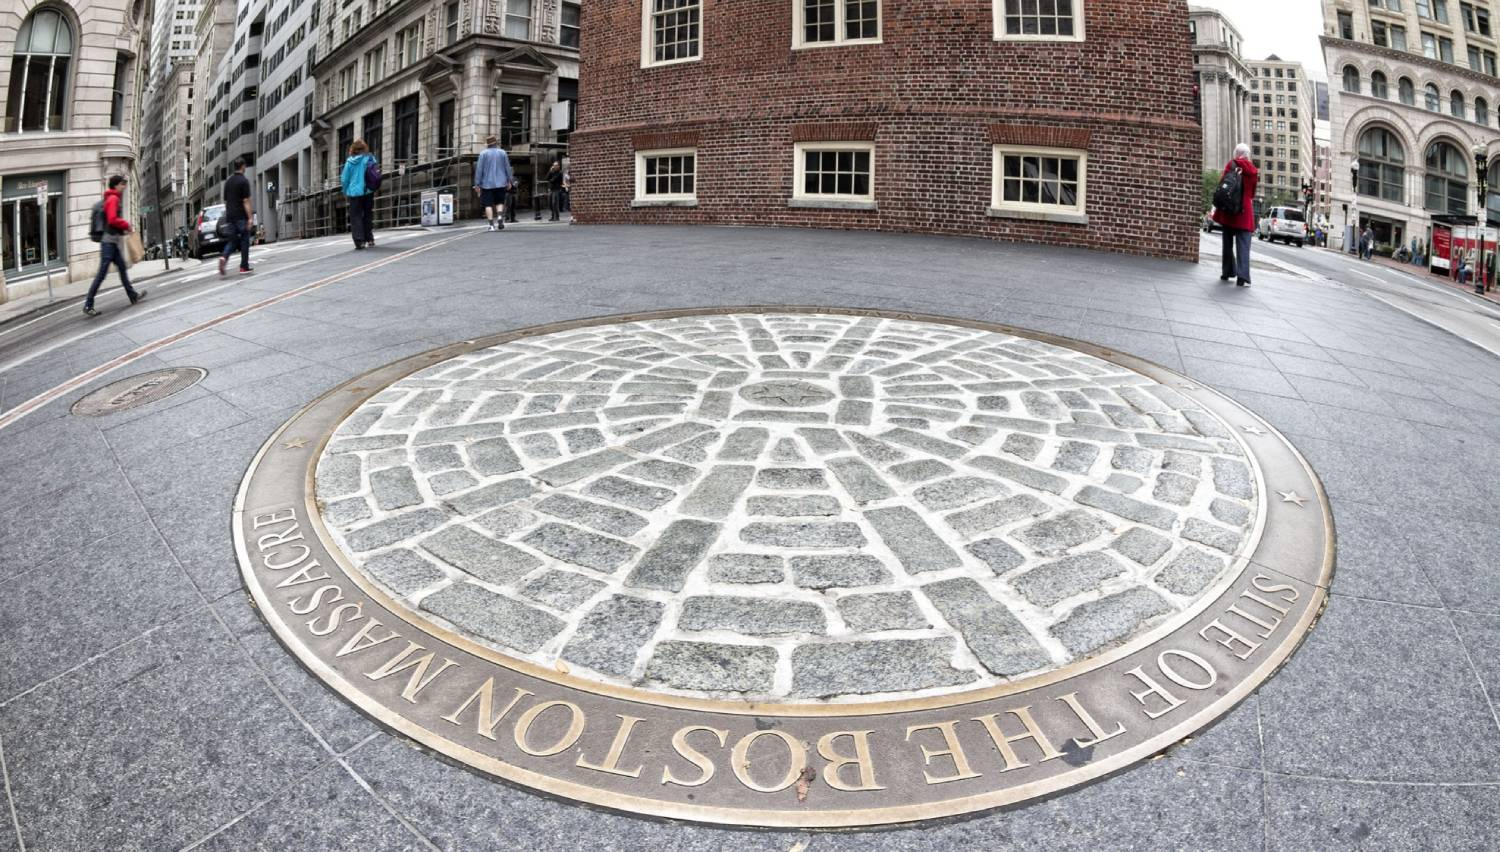 Site of the Boston Massacre - Things To Do In Boston